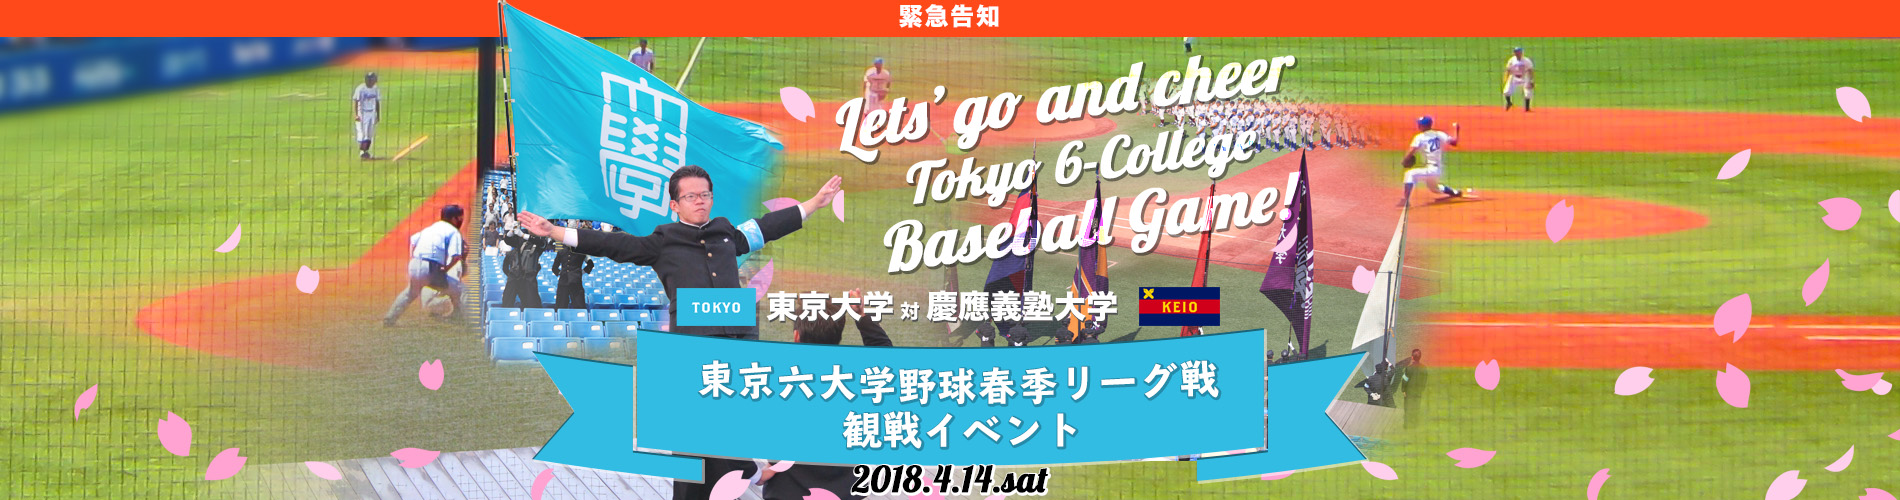 http://ouen-japan.jp/18april_baseballevent/